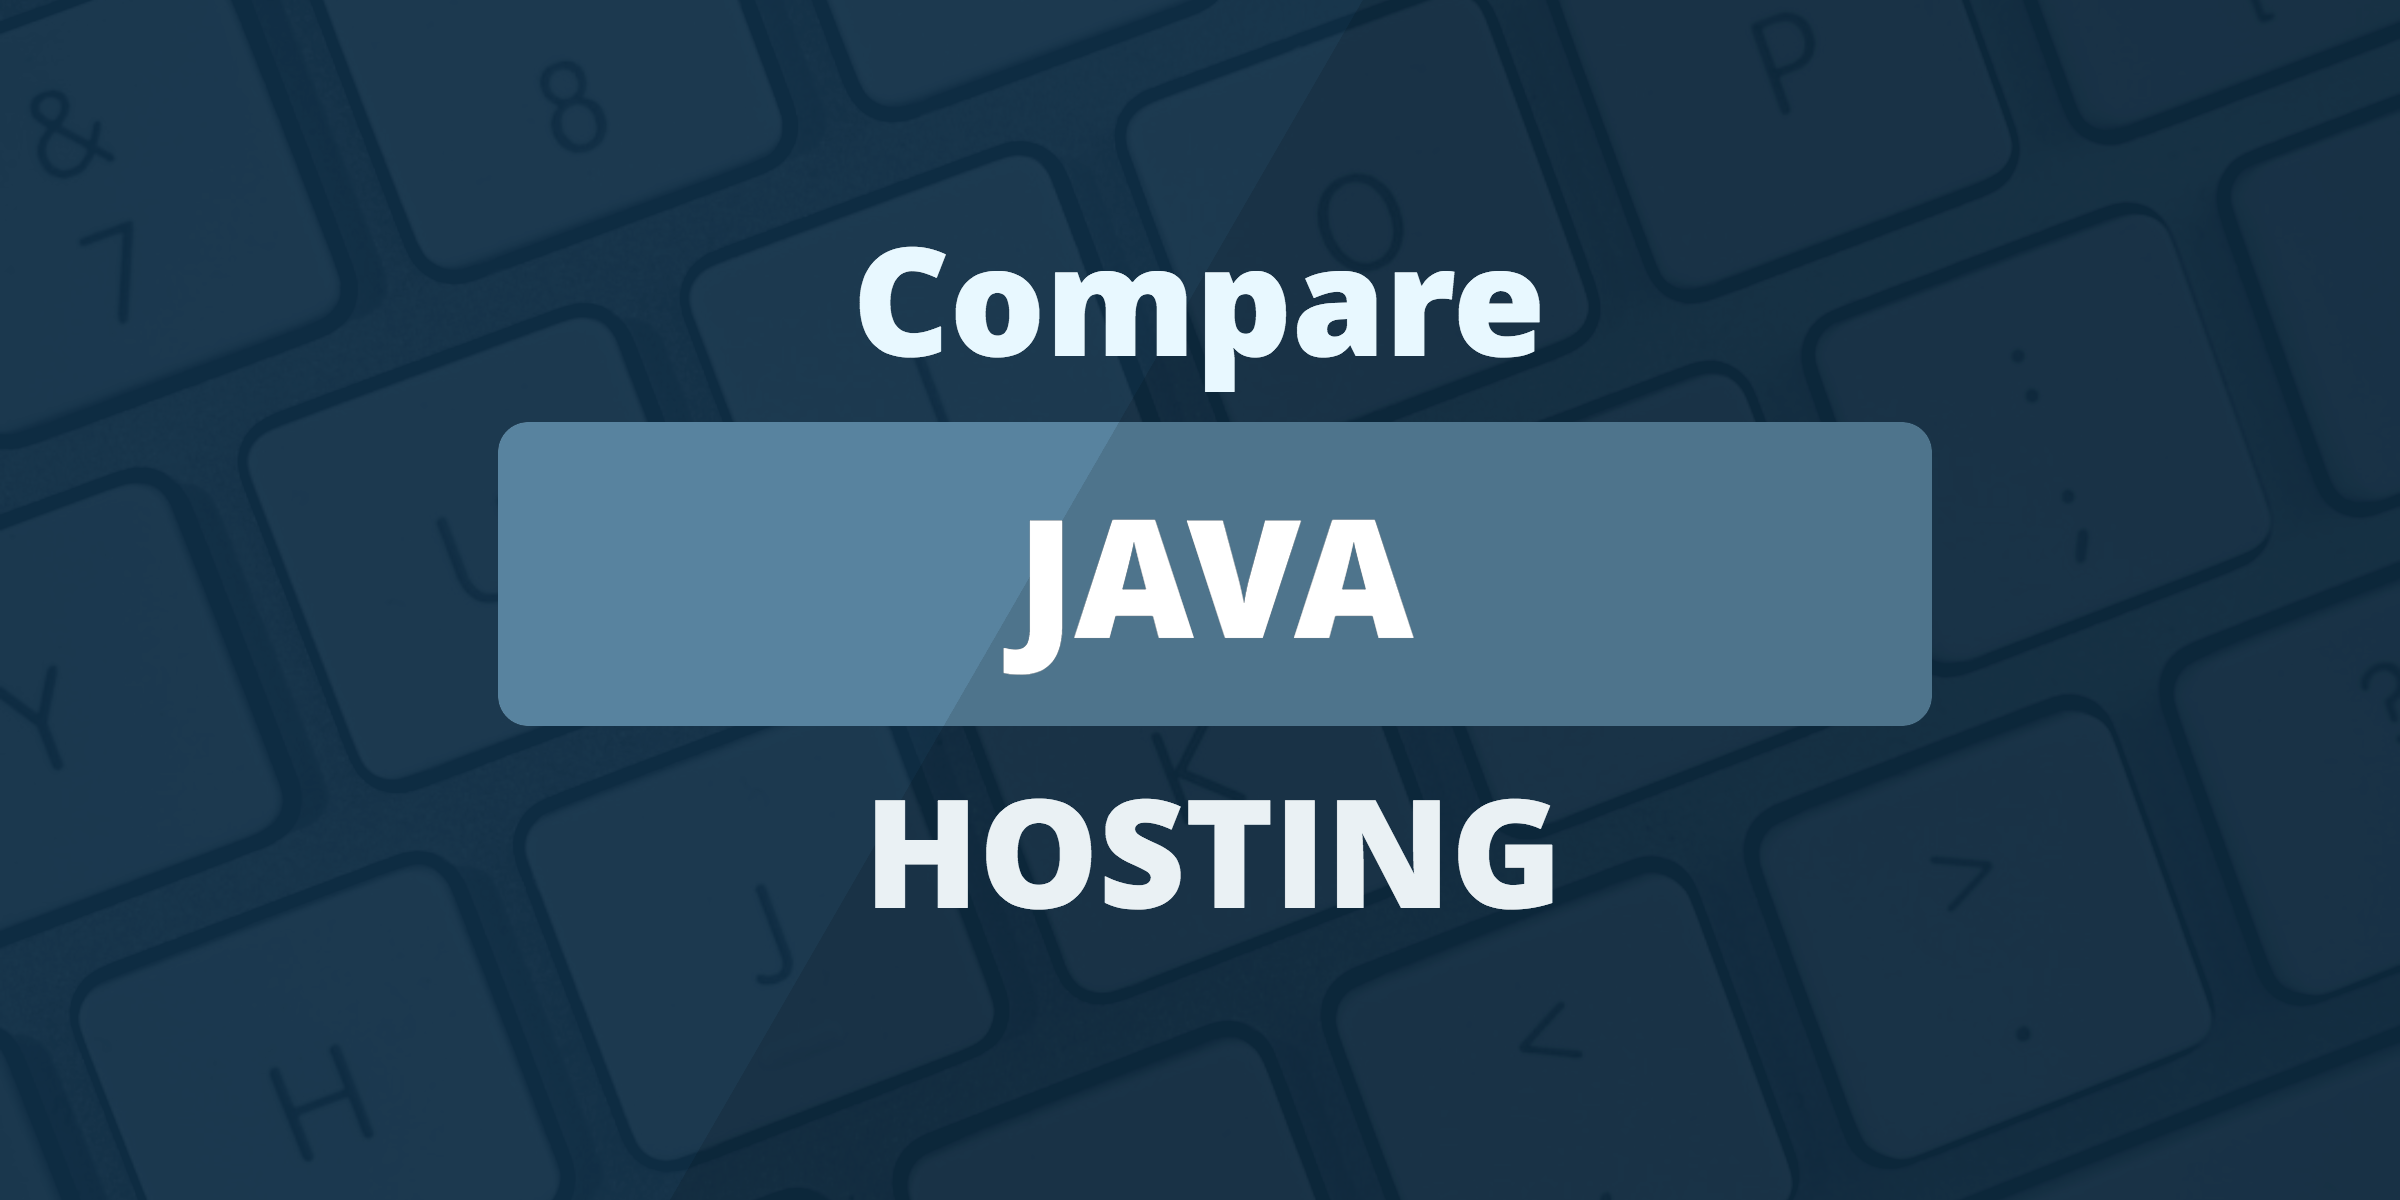 compare java hosting